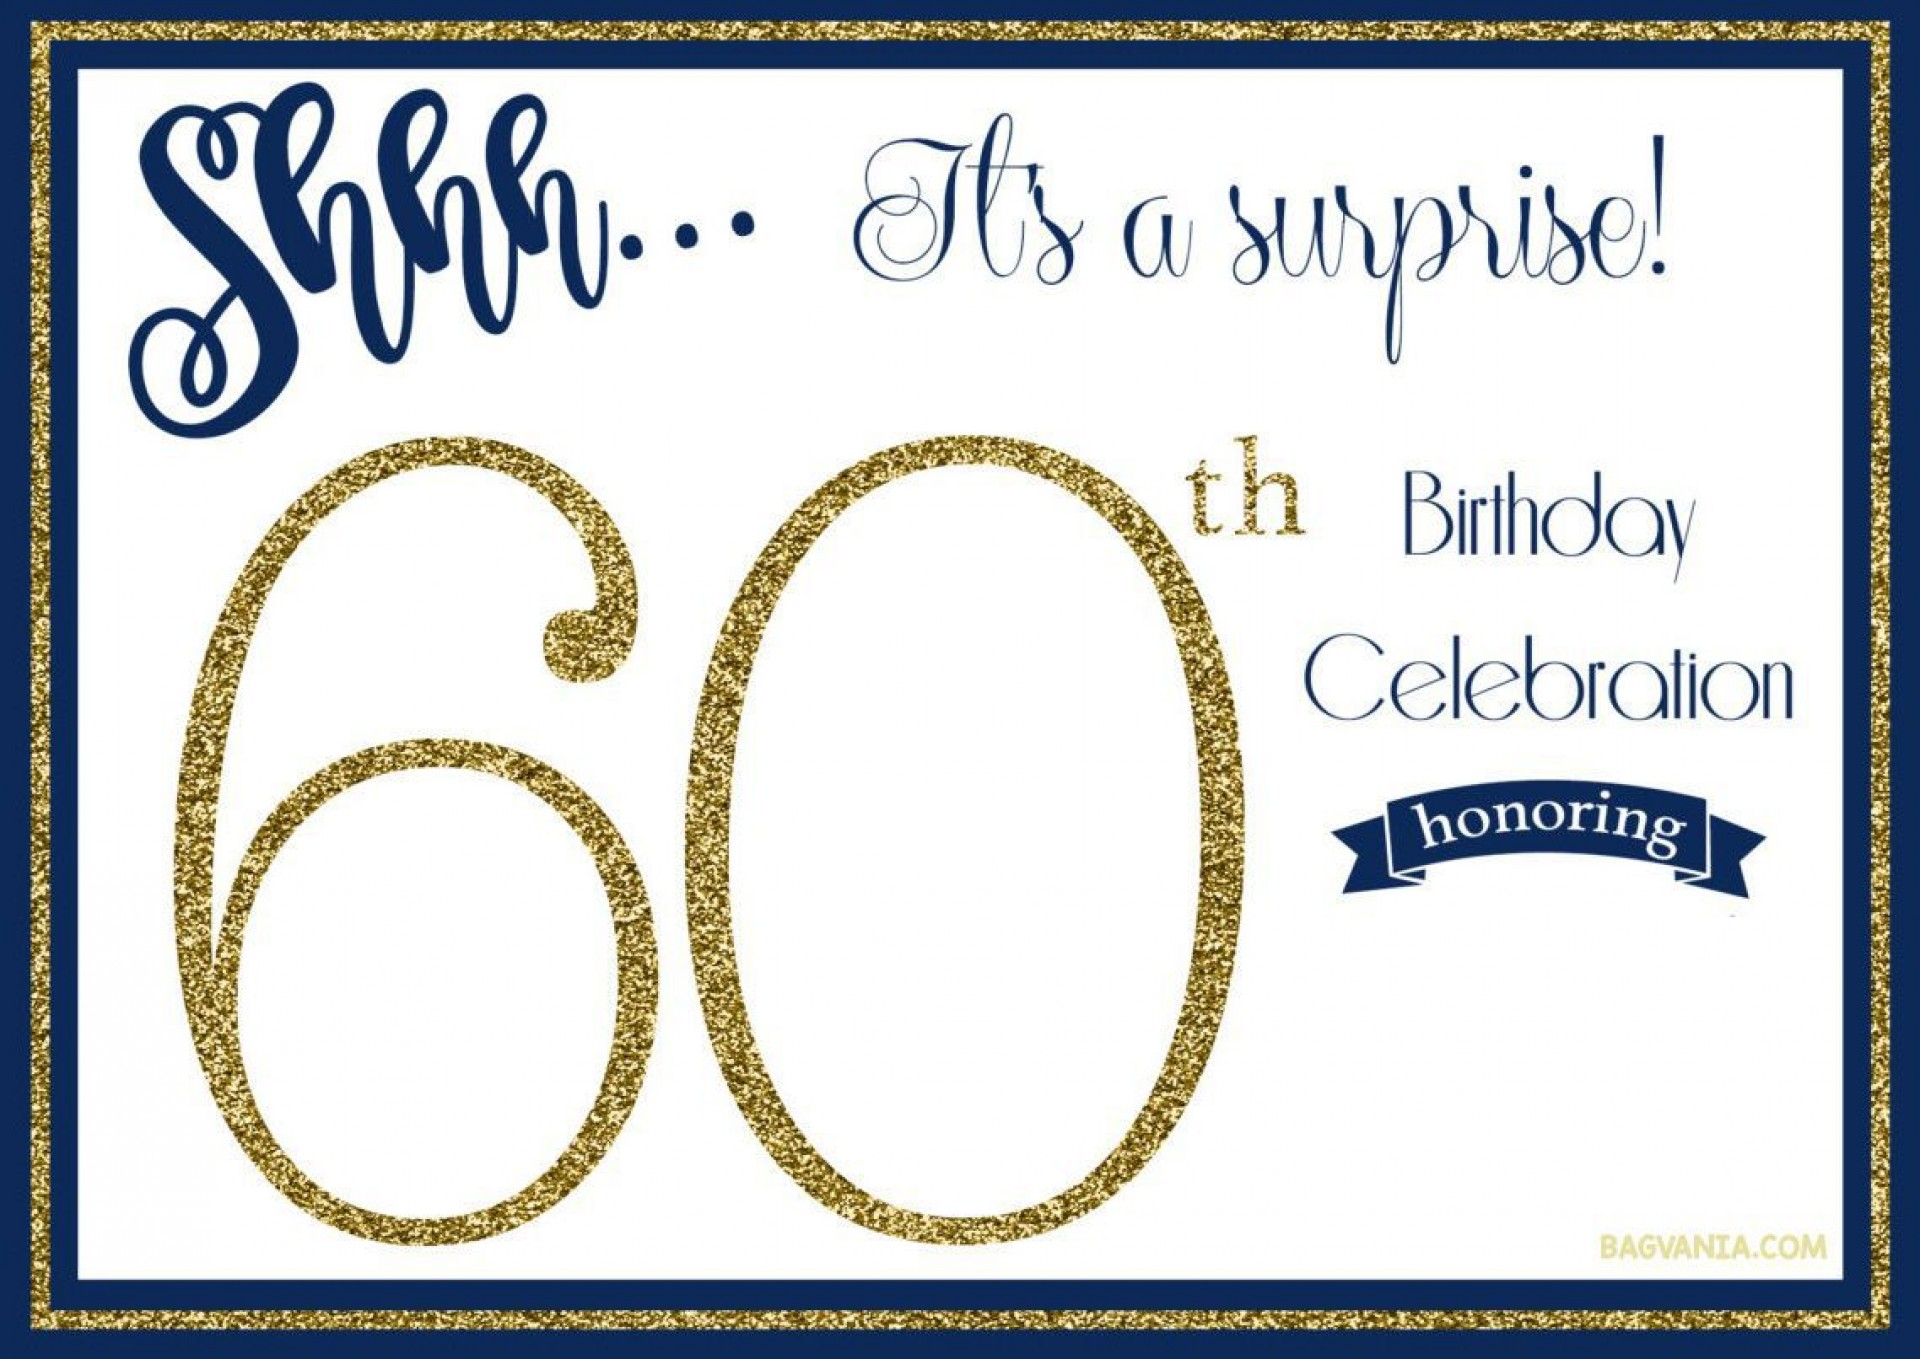 000 Sensational 60th Birthday Invitation Template Highest Clarity  Card Free Download1920